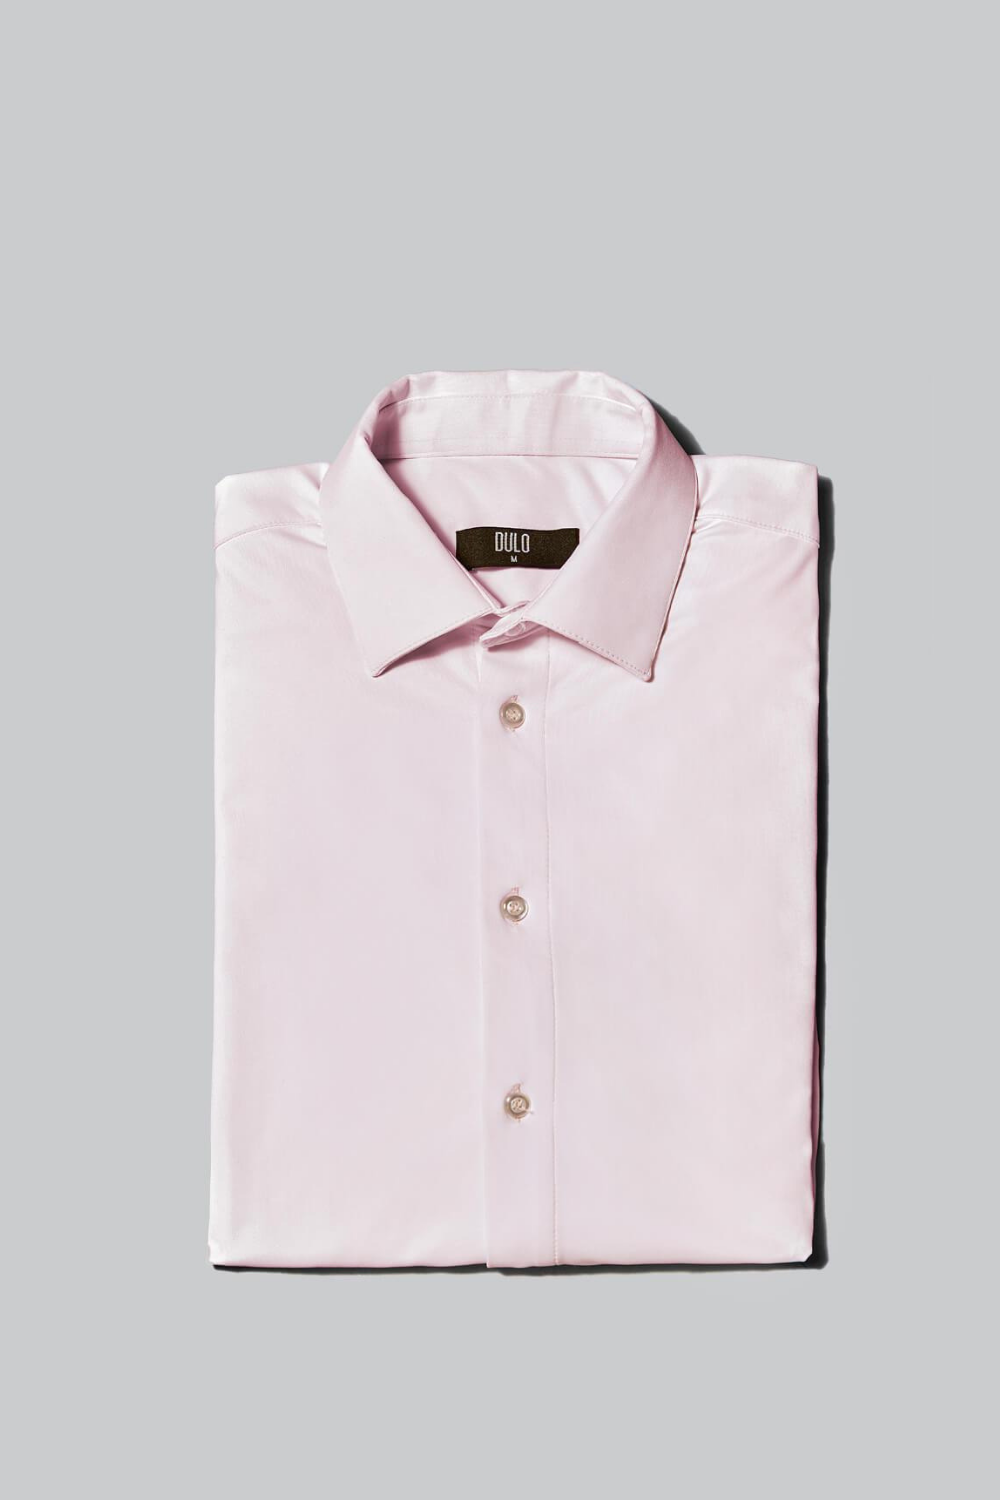 DULO Dress Shirt From Performance Fabric - Rose